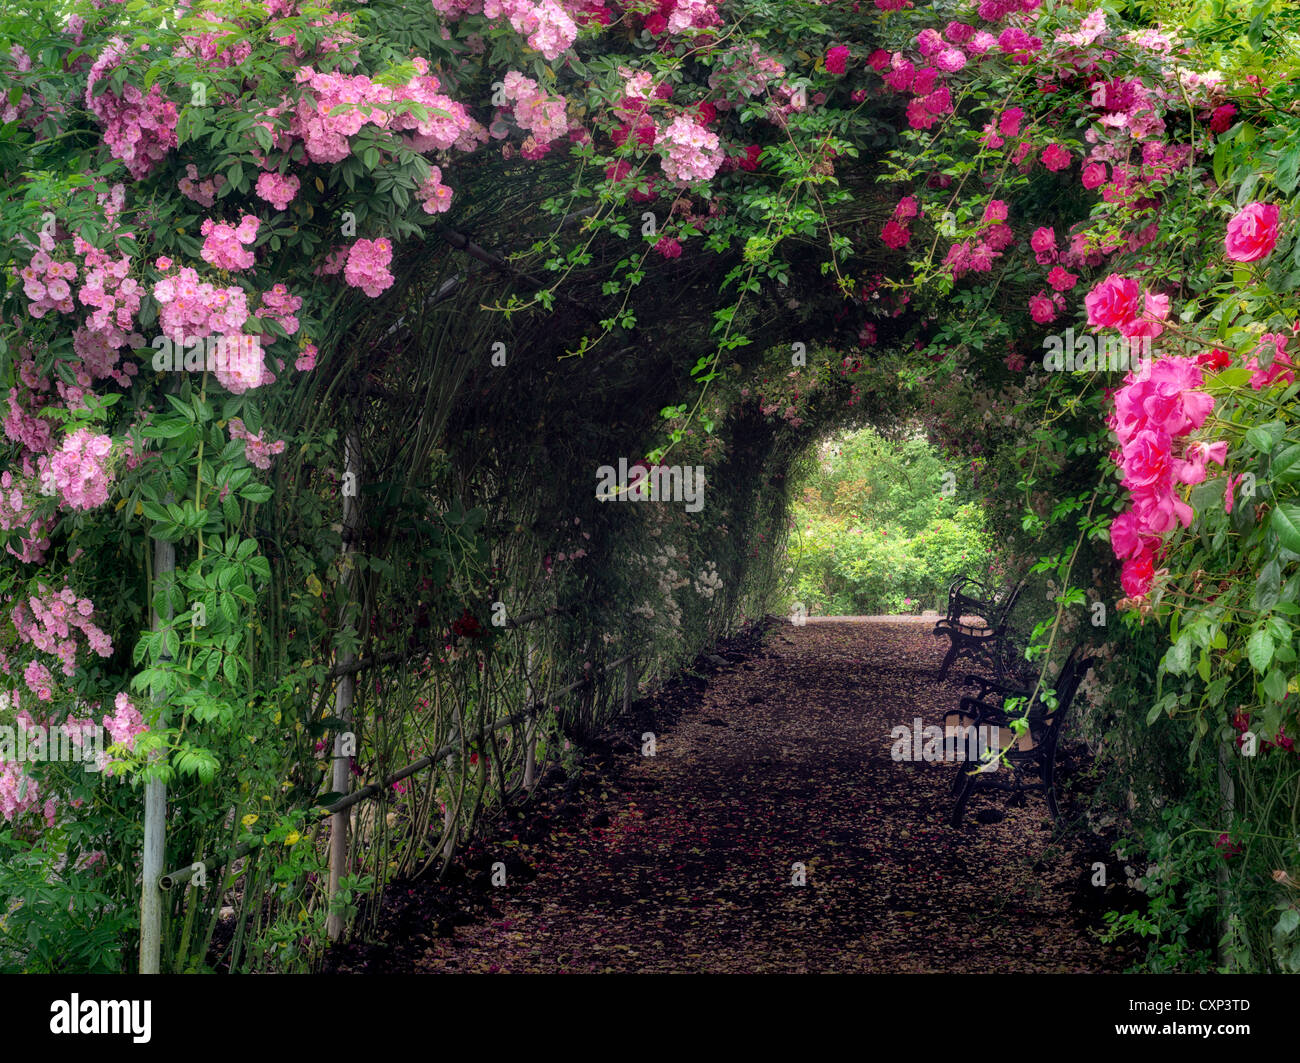 Rose Arbor Stock Photos & Rose Arbor Stock Images - Alamy